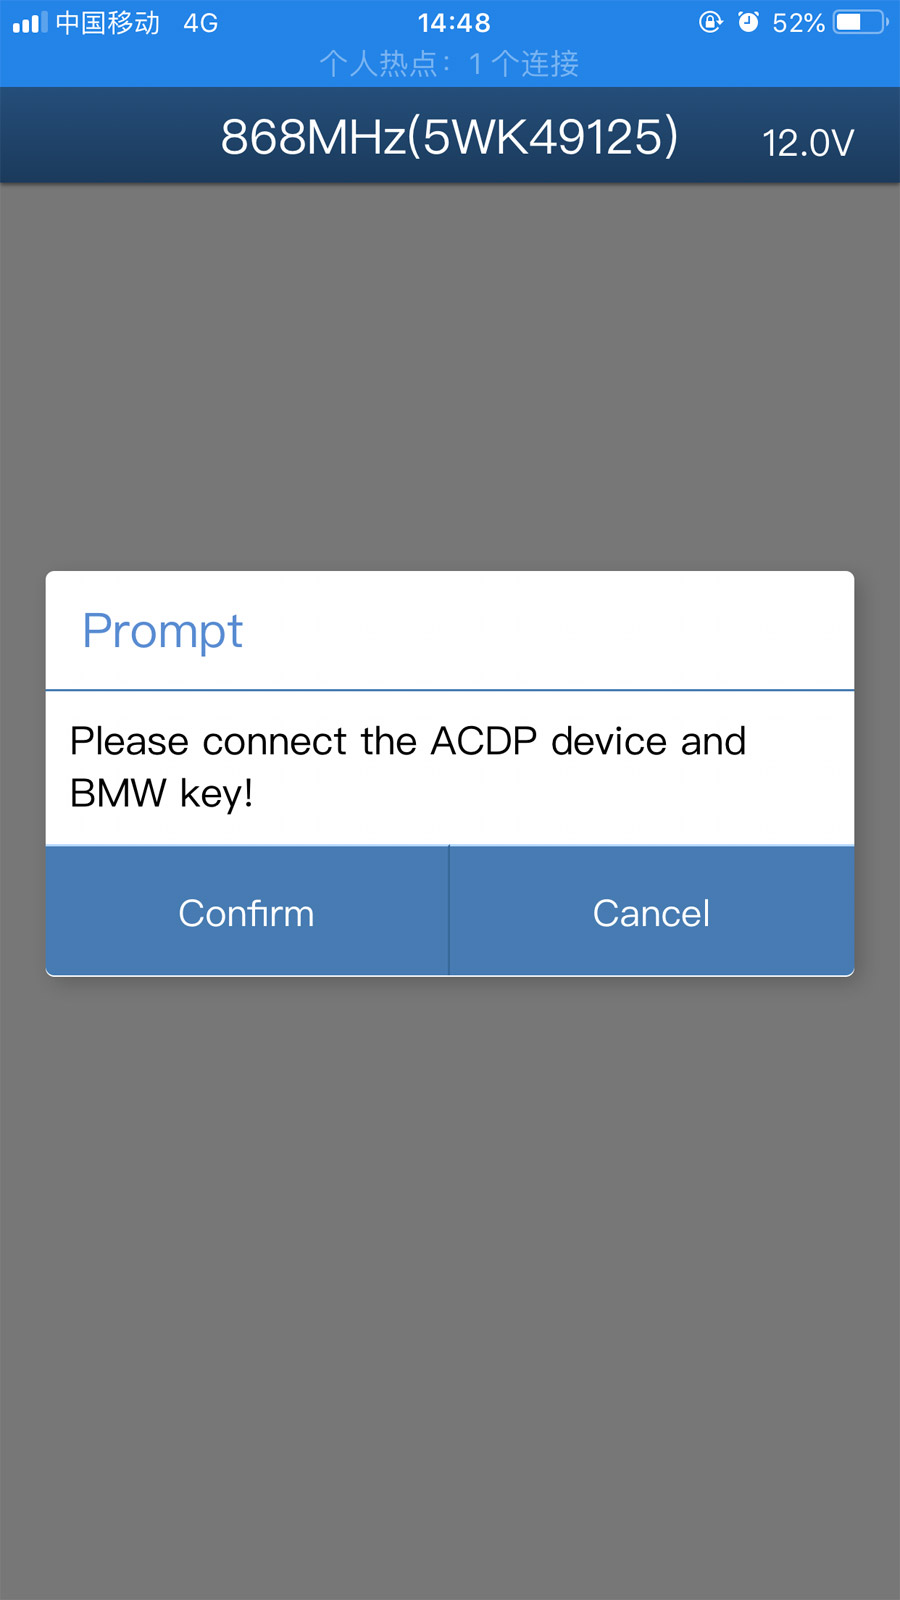 yanhua-mini-acdp-on-bmw-e-chassis-868mhz-5wk49125-key-reset-03